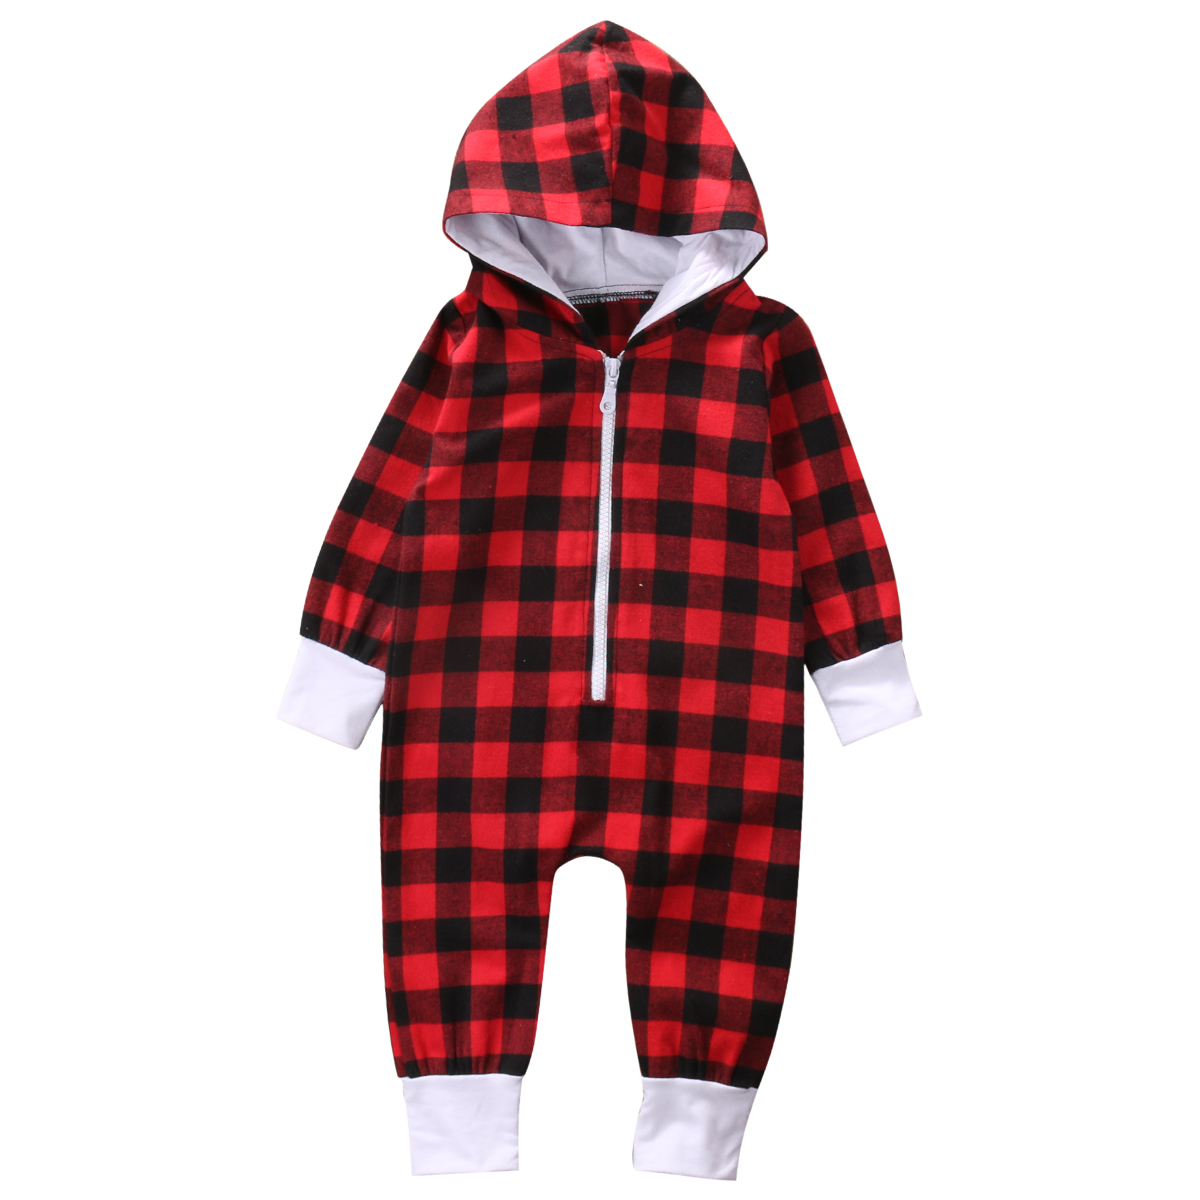 New Toddler Infant Baby Boy Girl Hooded Long Sleeve Red Plaid Zipper Romper Jumpsuit Clothes Outfits New baby girl 1st birthday outfits short sleeve infant clothing sets lace romper dress headband shoe toddler tutu set baby s clothes